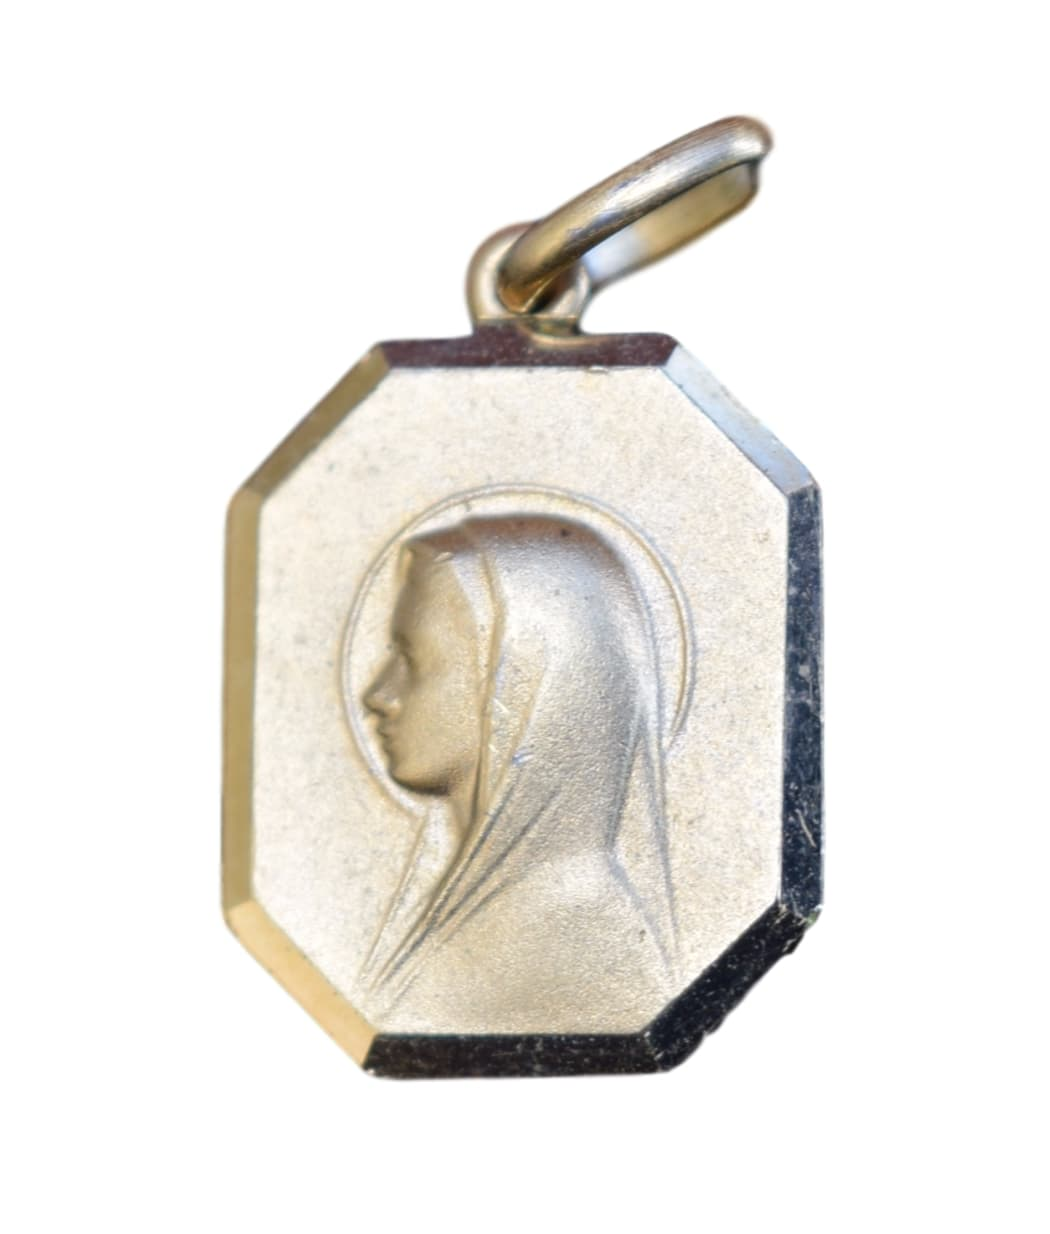 Our Lady Virgin Mary Medal - French Religious Lourdes Medal Pendant Charm - Gold Filled Religious Medal Necklace